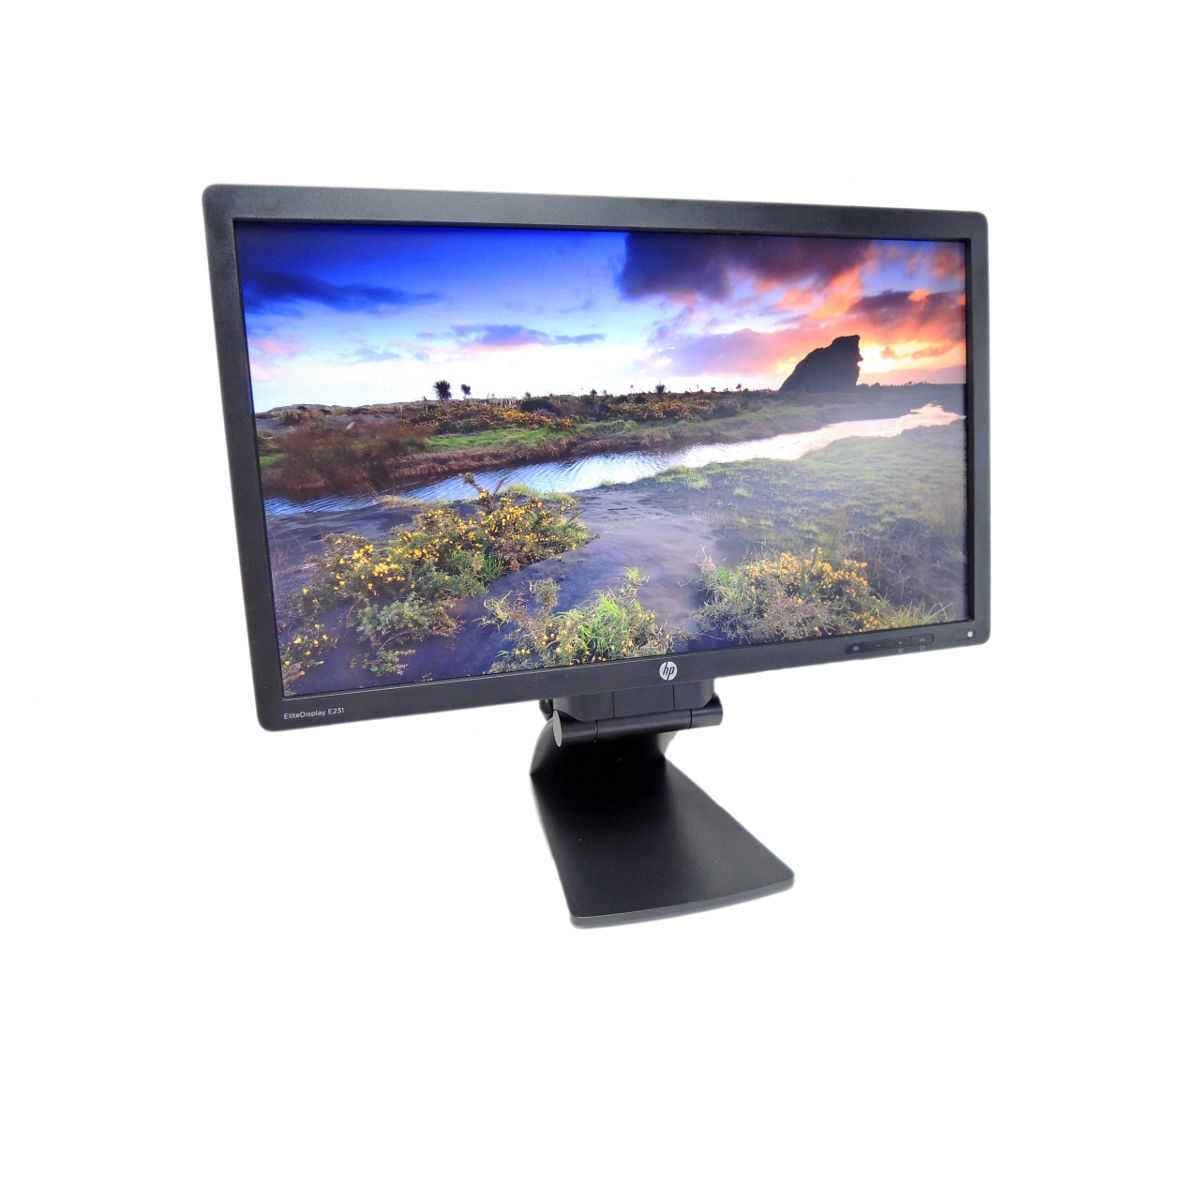 Refurbished Grade A HP EliteDisplay E231 23' 1080p LED Monitor - VGA & DVI & DisplayPort